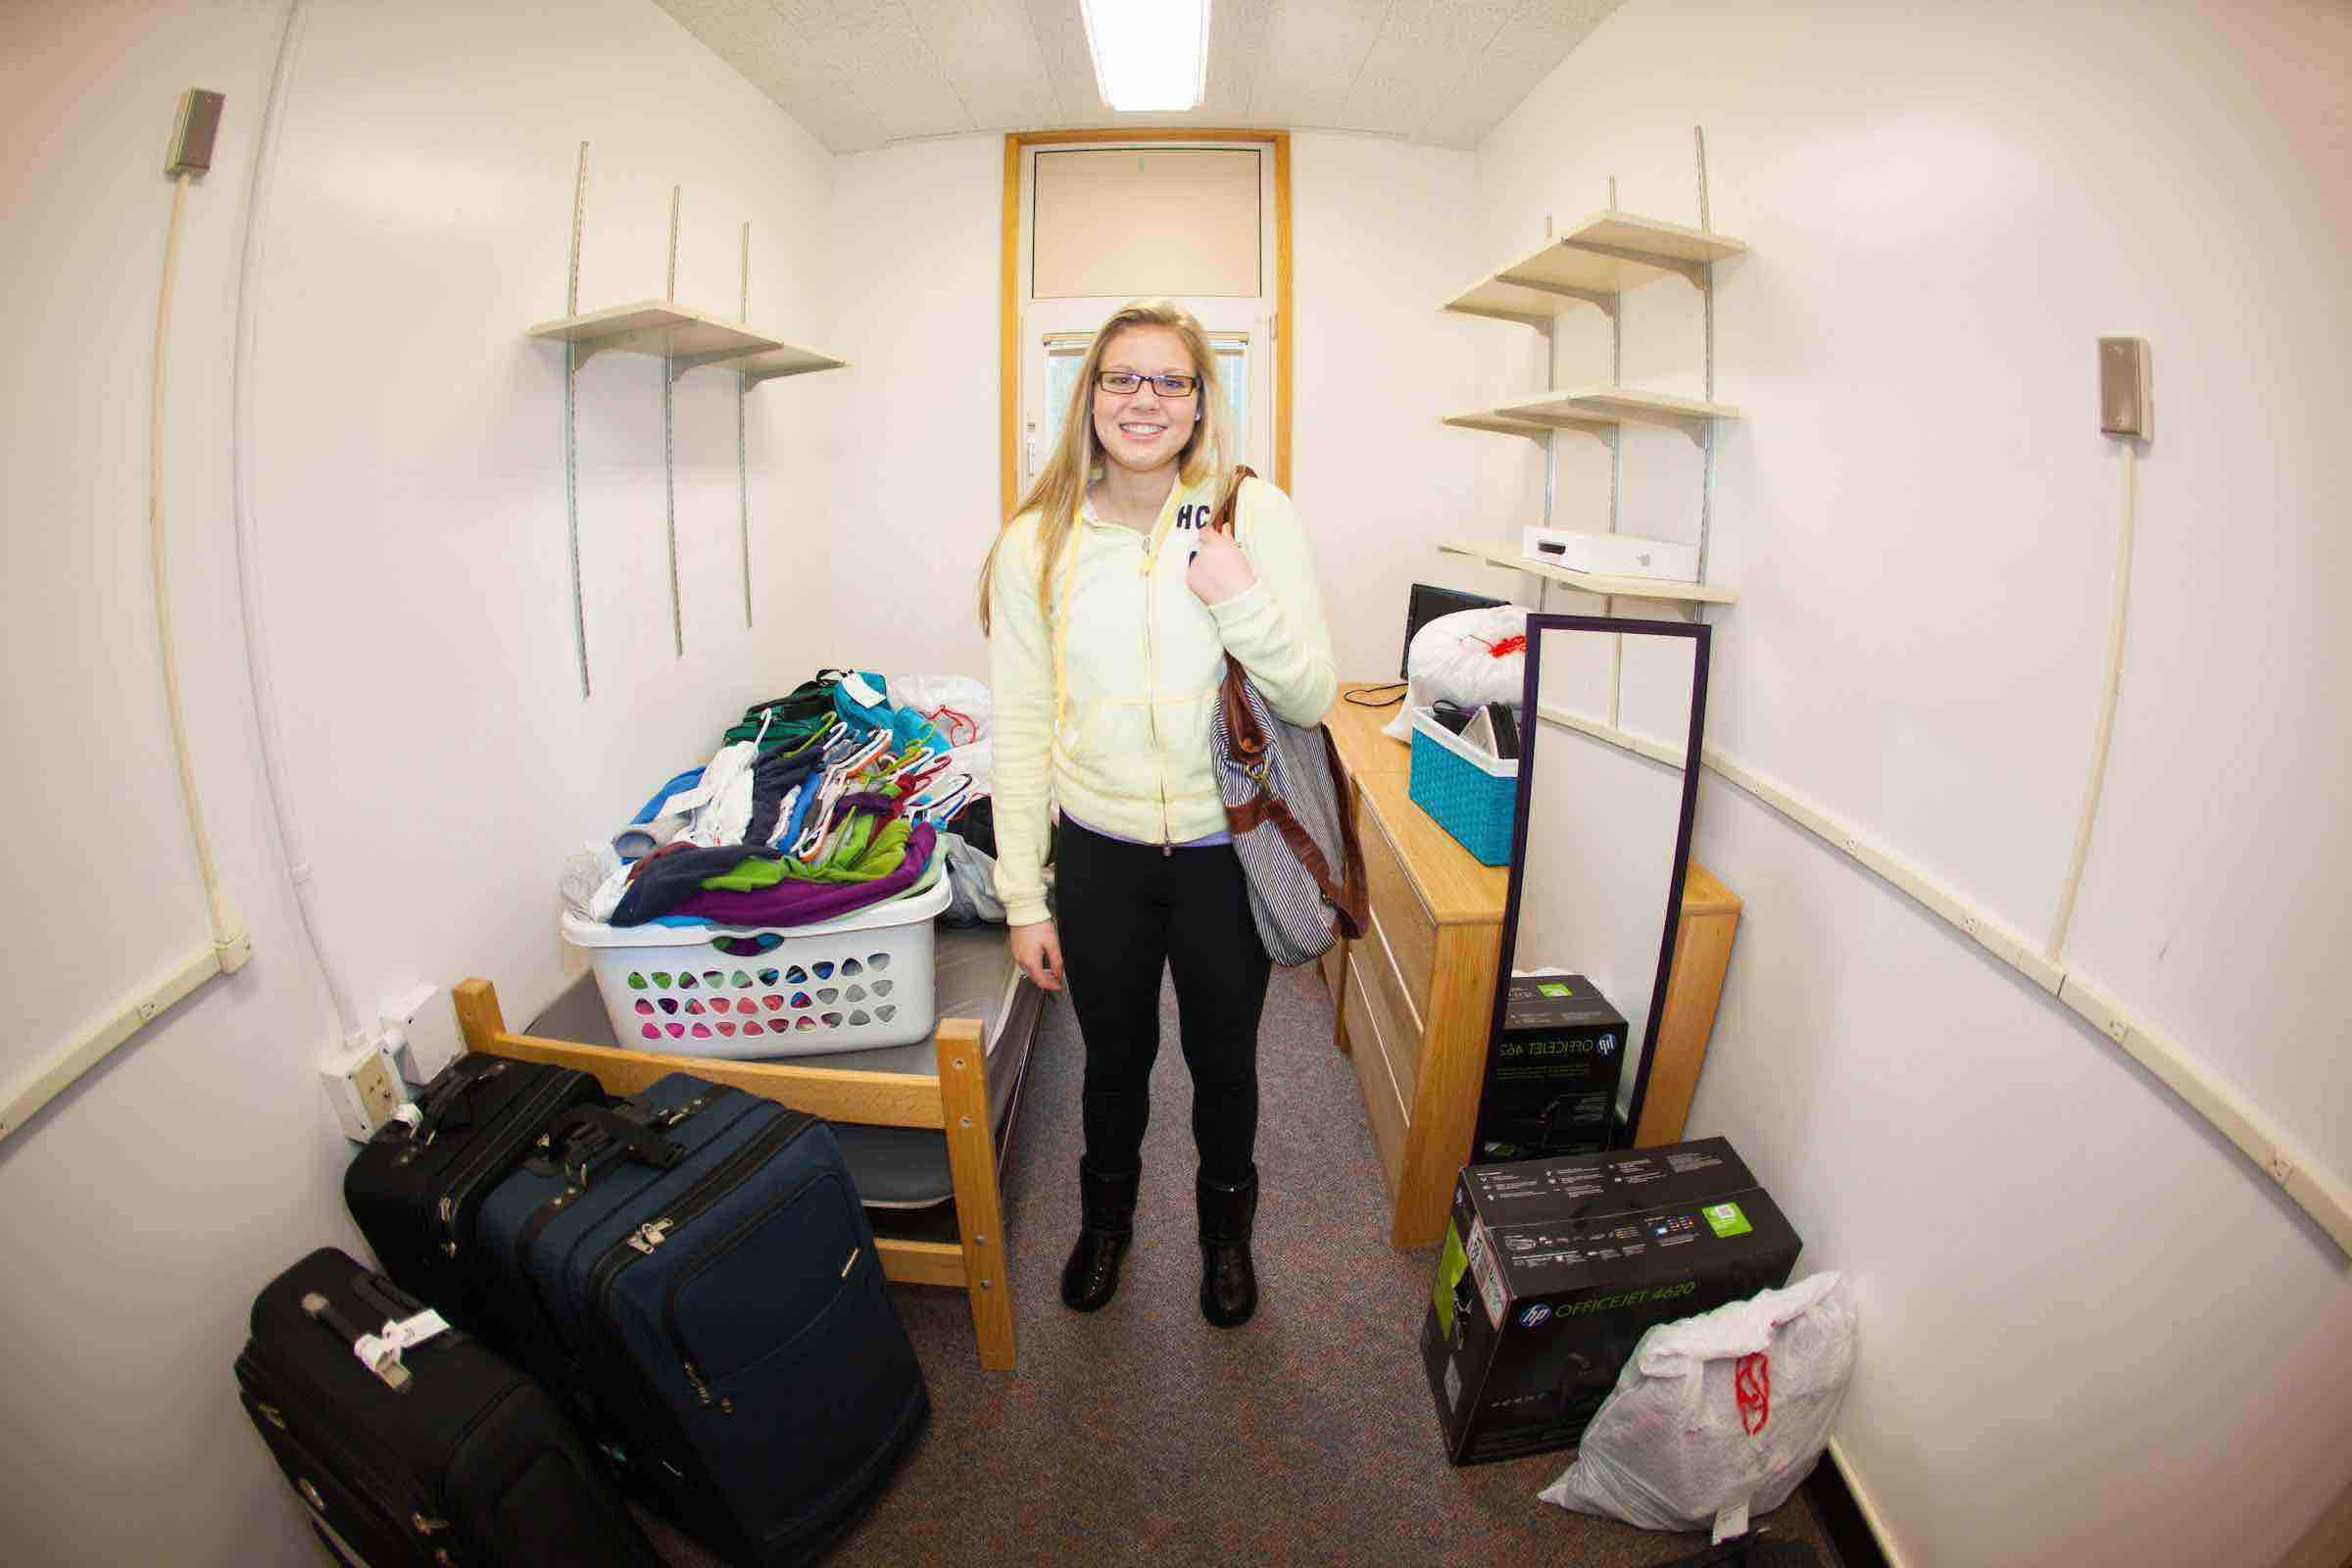 Student in new dorm room